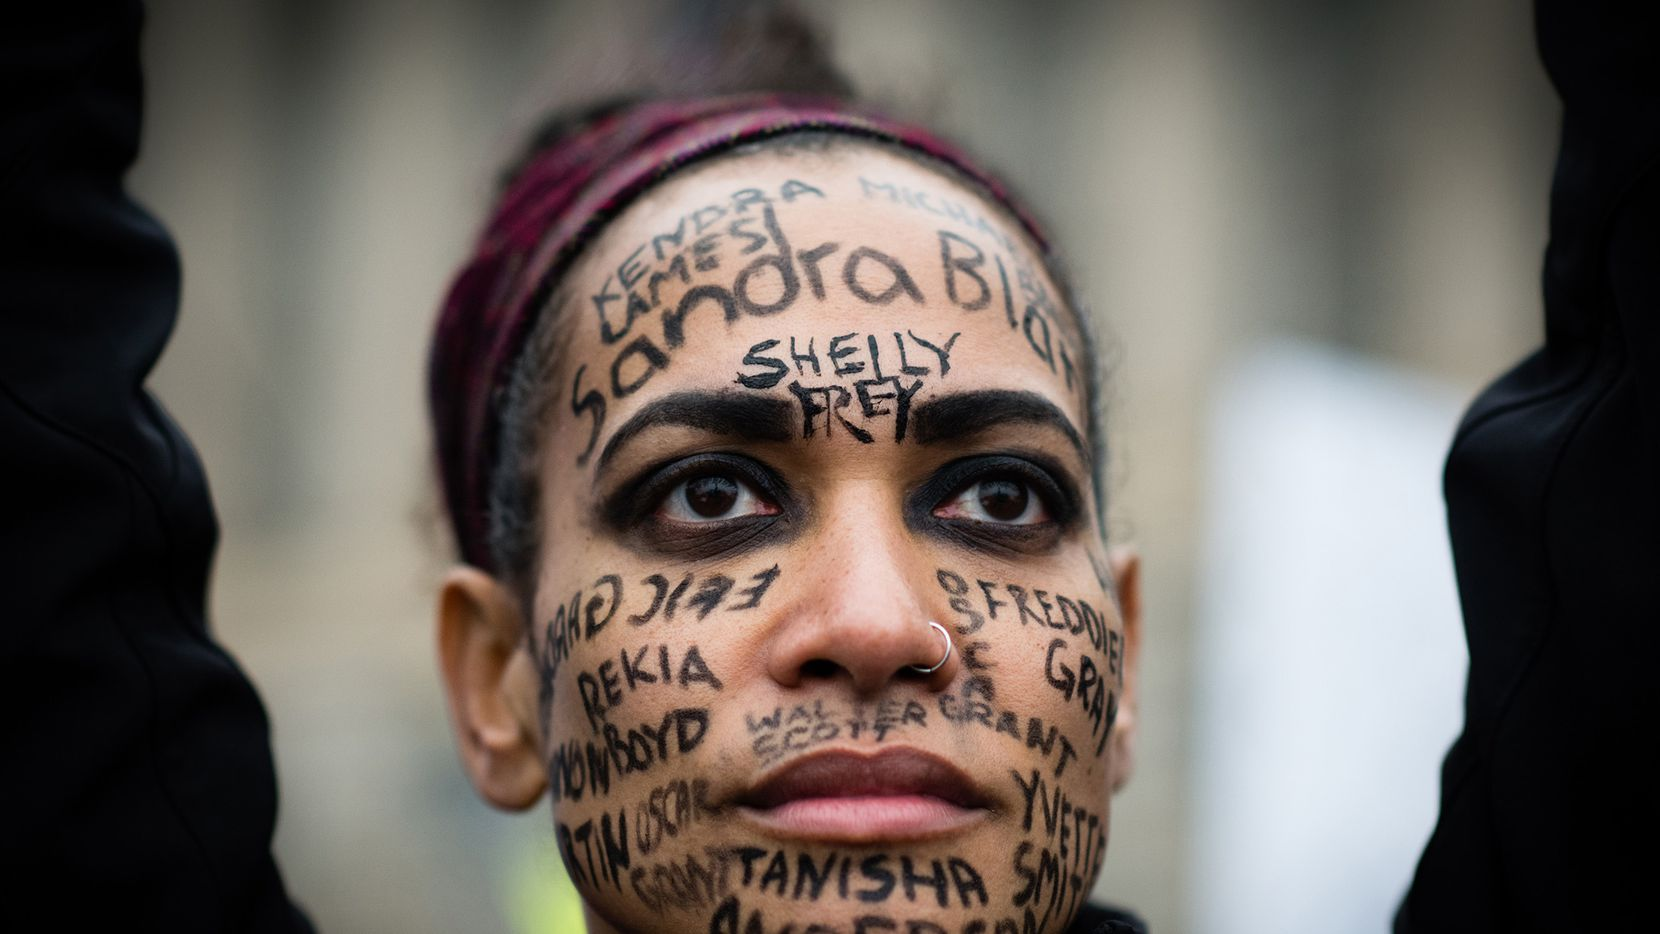 Aisha Bain, 38, of Baltimore has the names of African-Americans who died from violence written on her face. She was marching with the organization Move to End Violence.